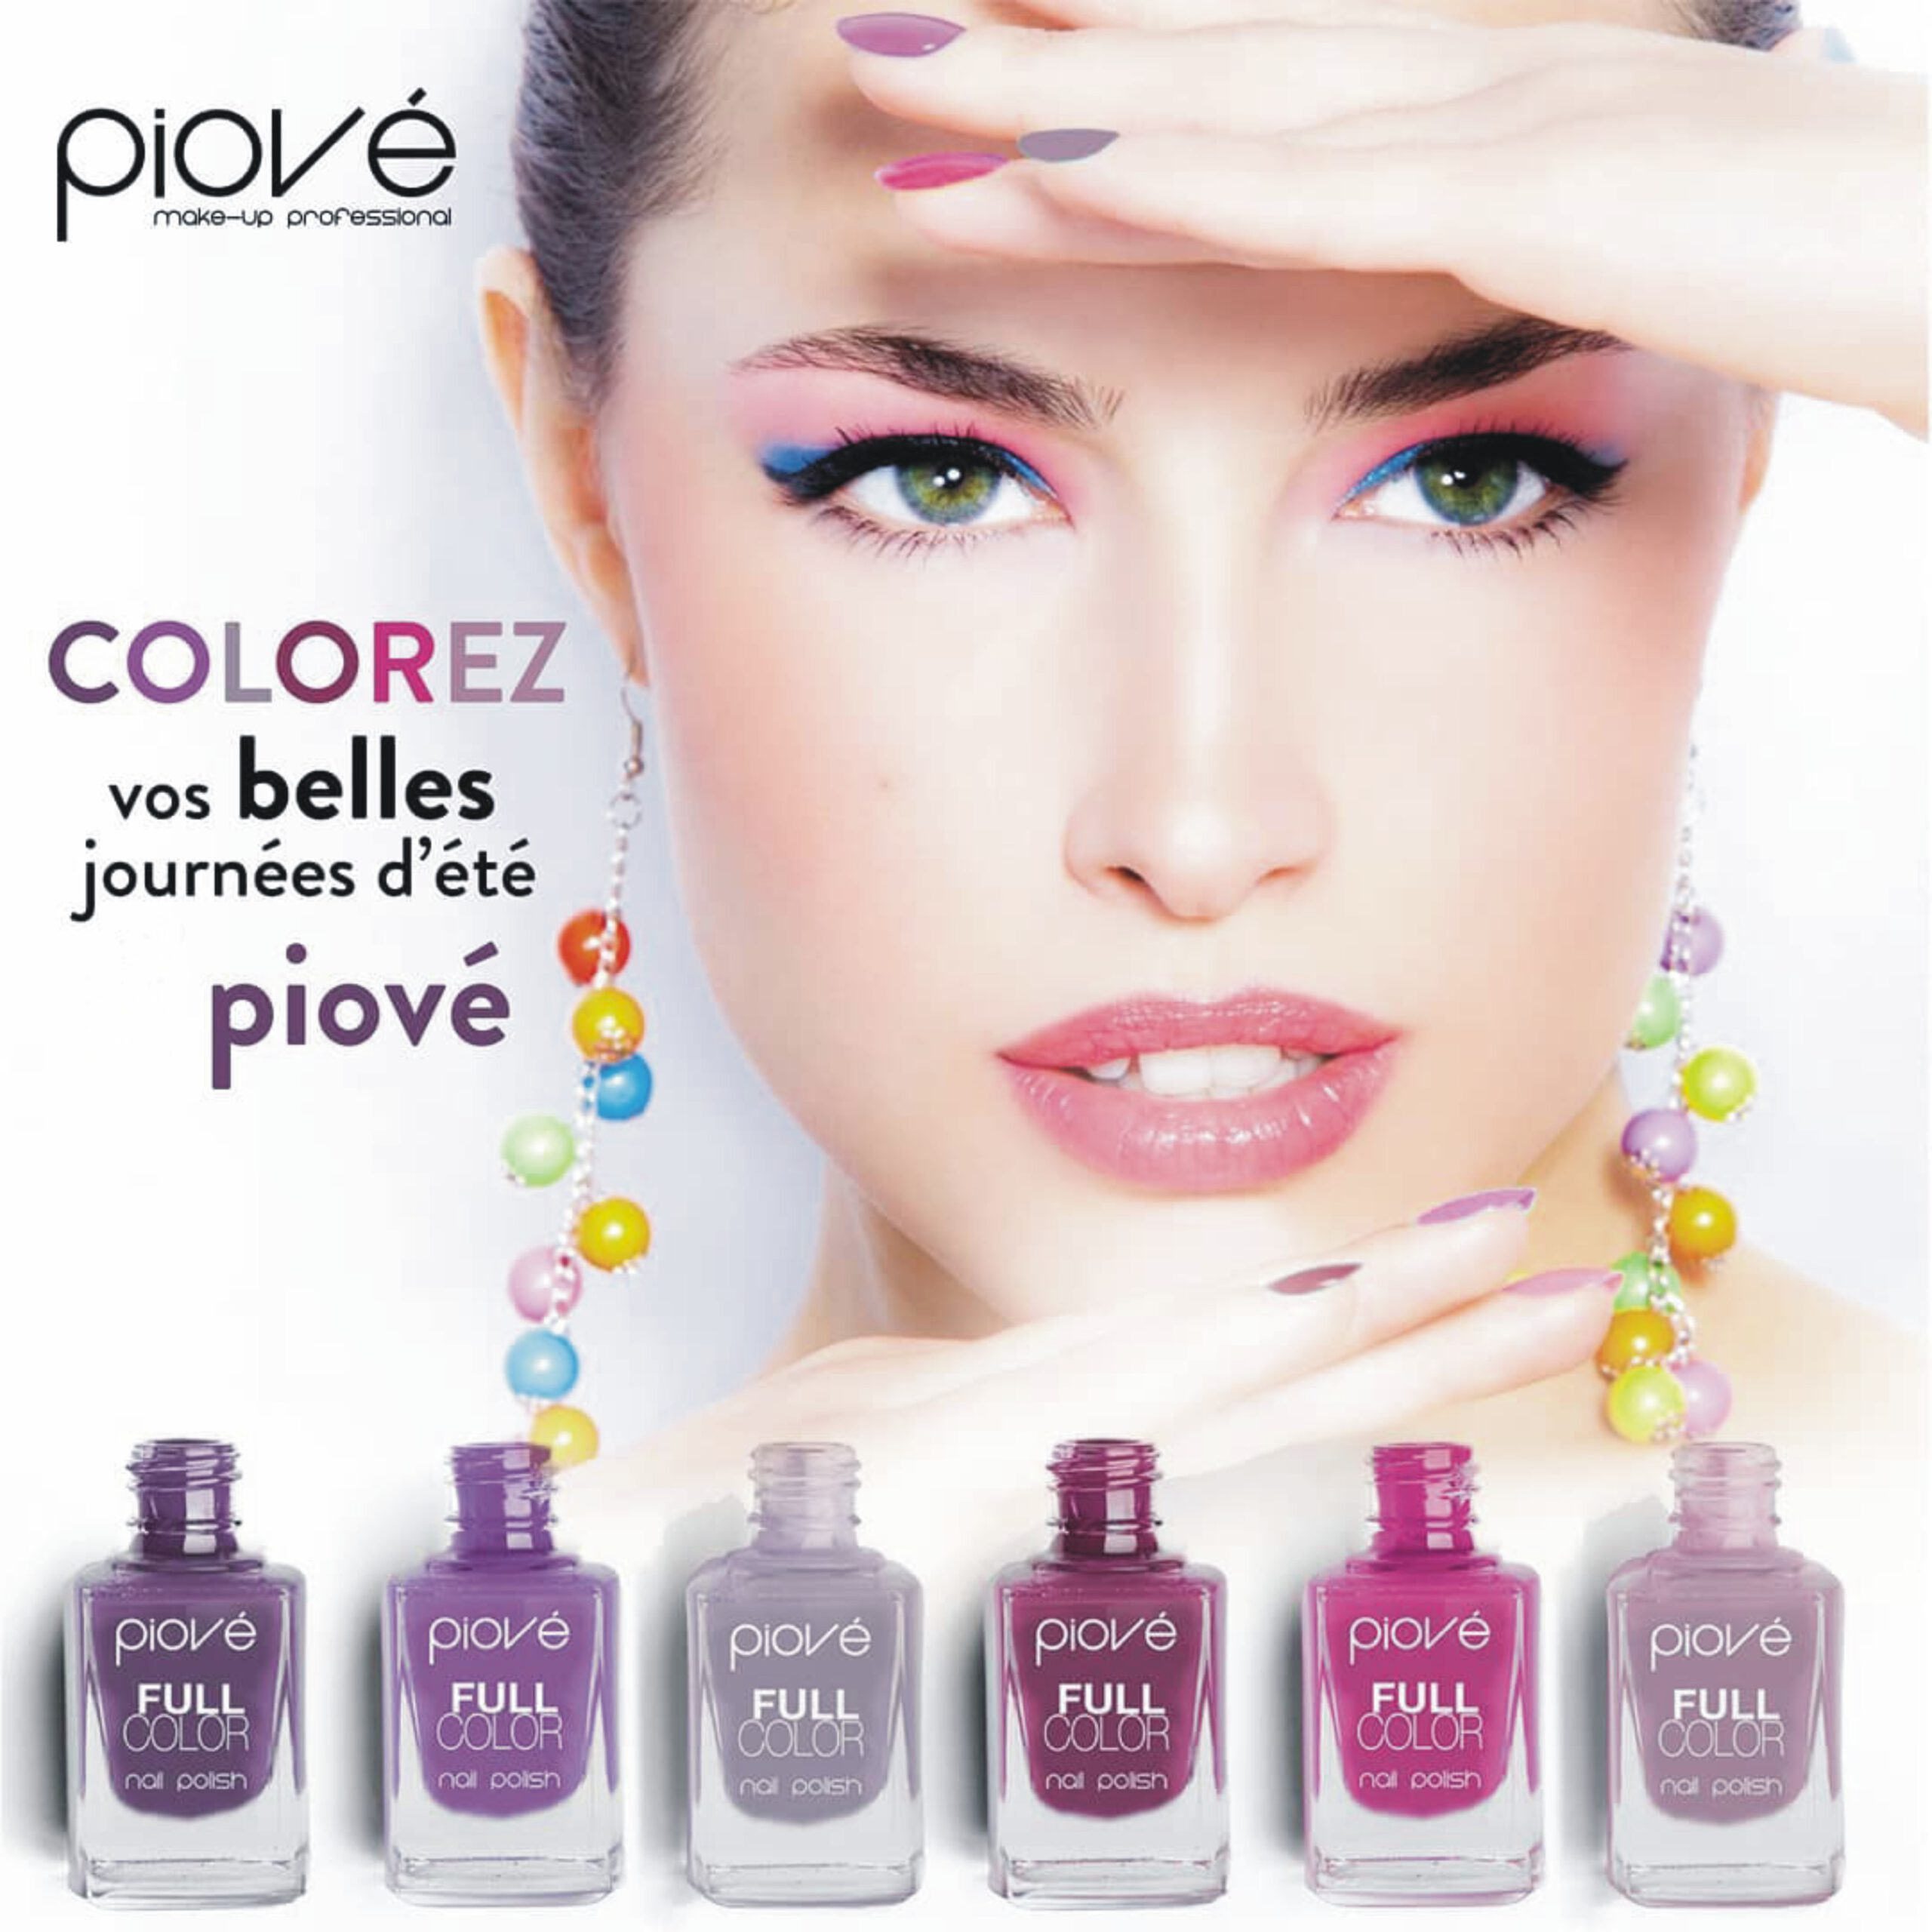 full-color-piové-algerie-store